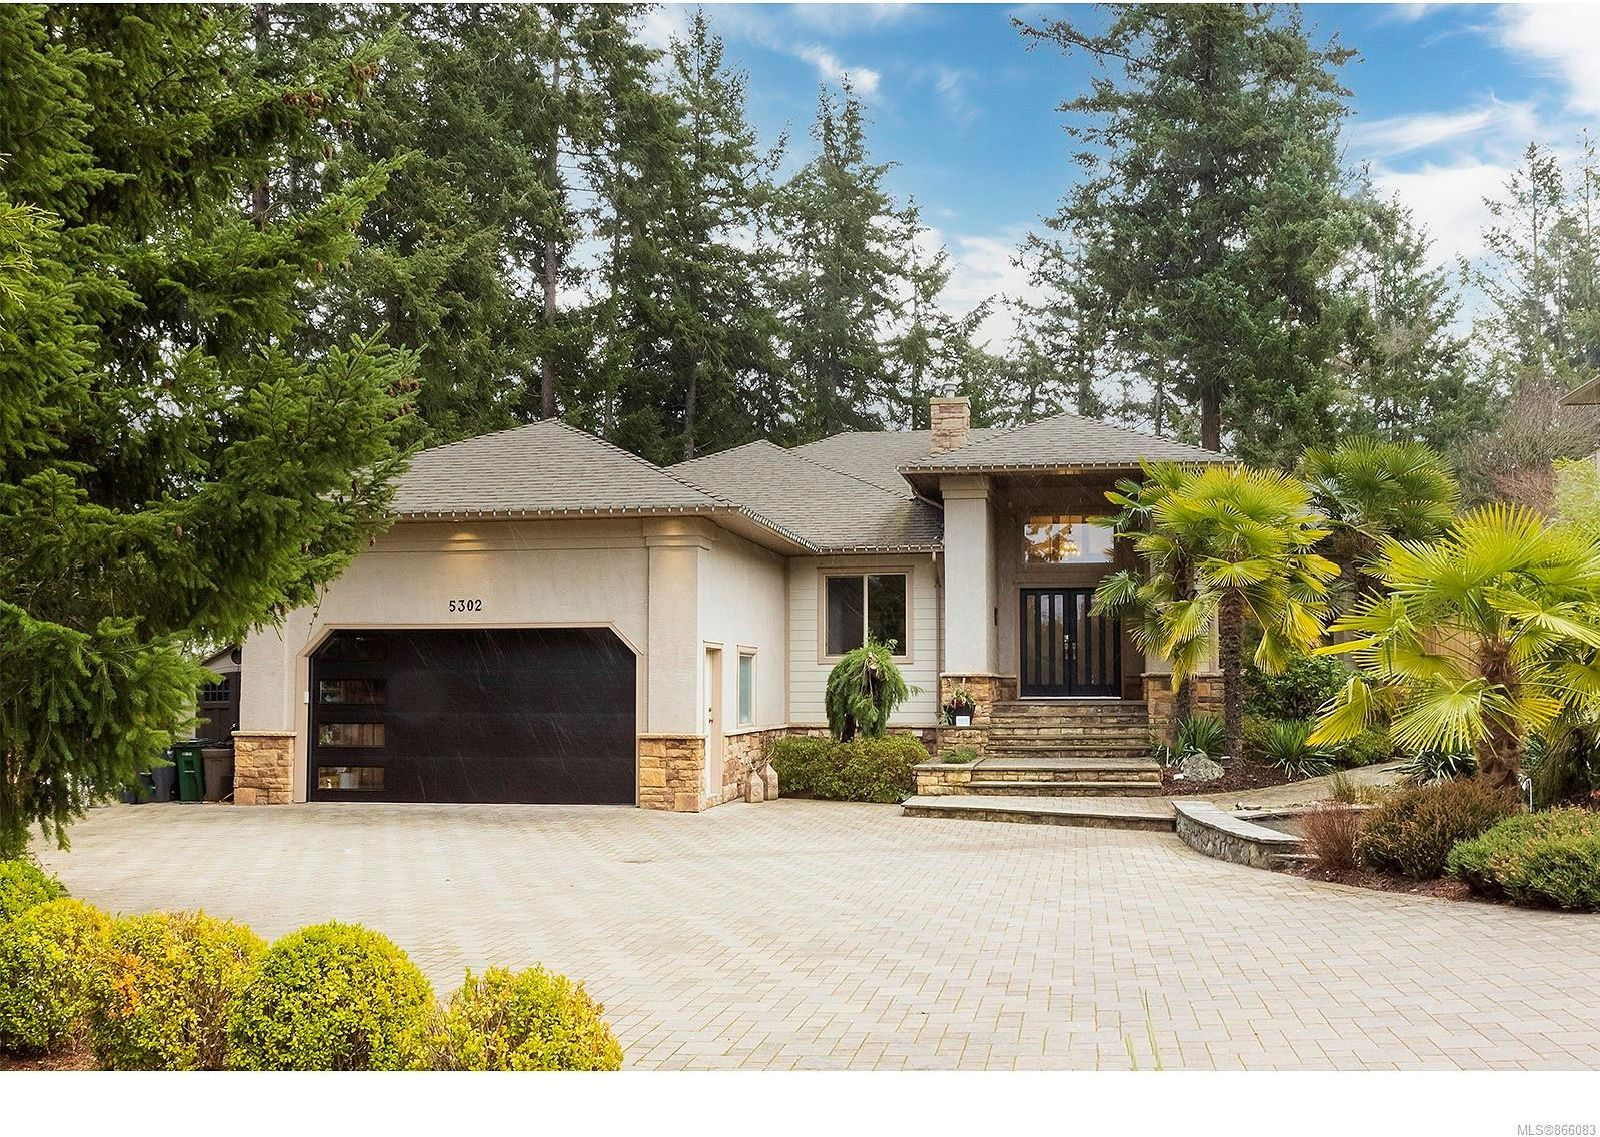 Main Photo: 5302 Sayward Hill Cres in : SE Cordova Bay House for sale (Saanich East)  : MLS®# 866083